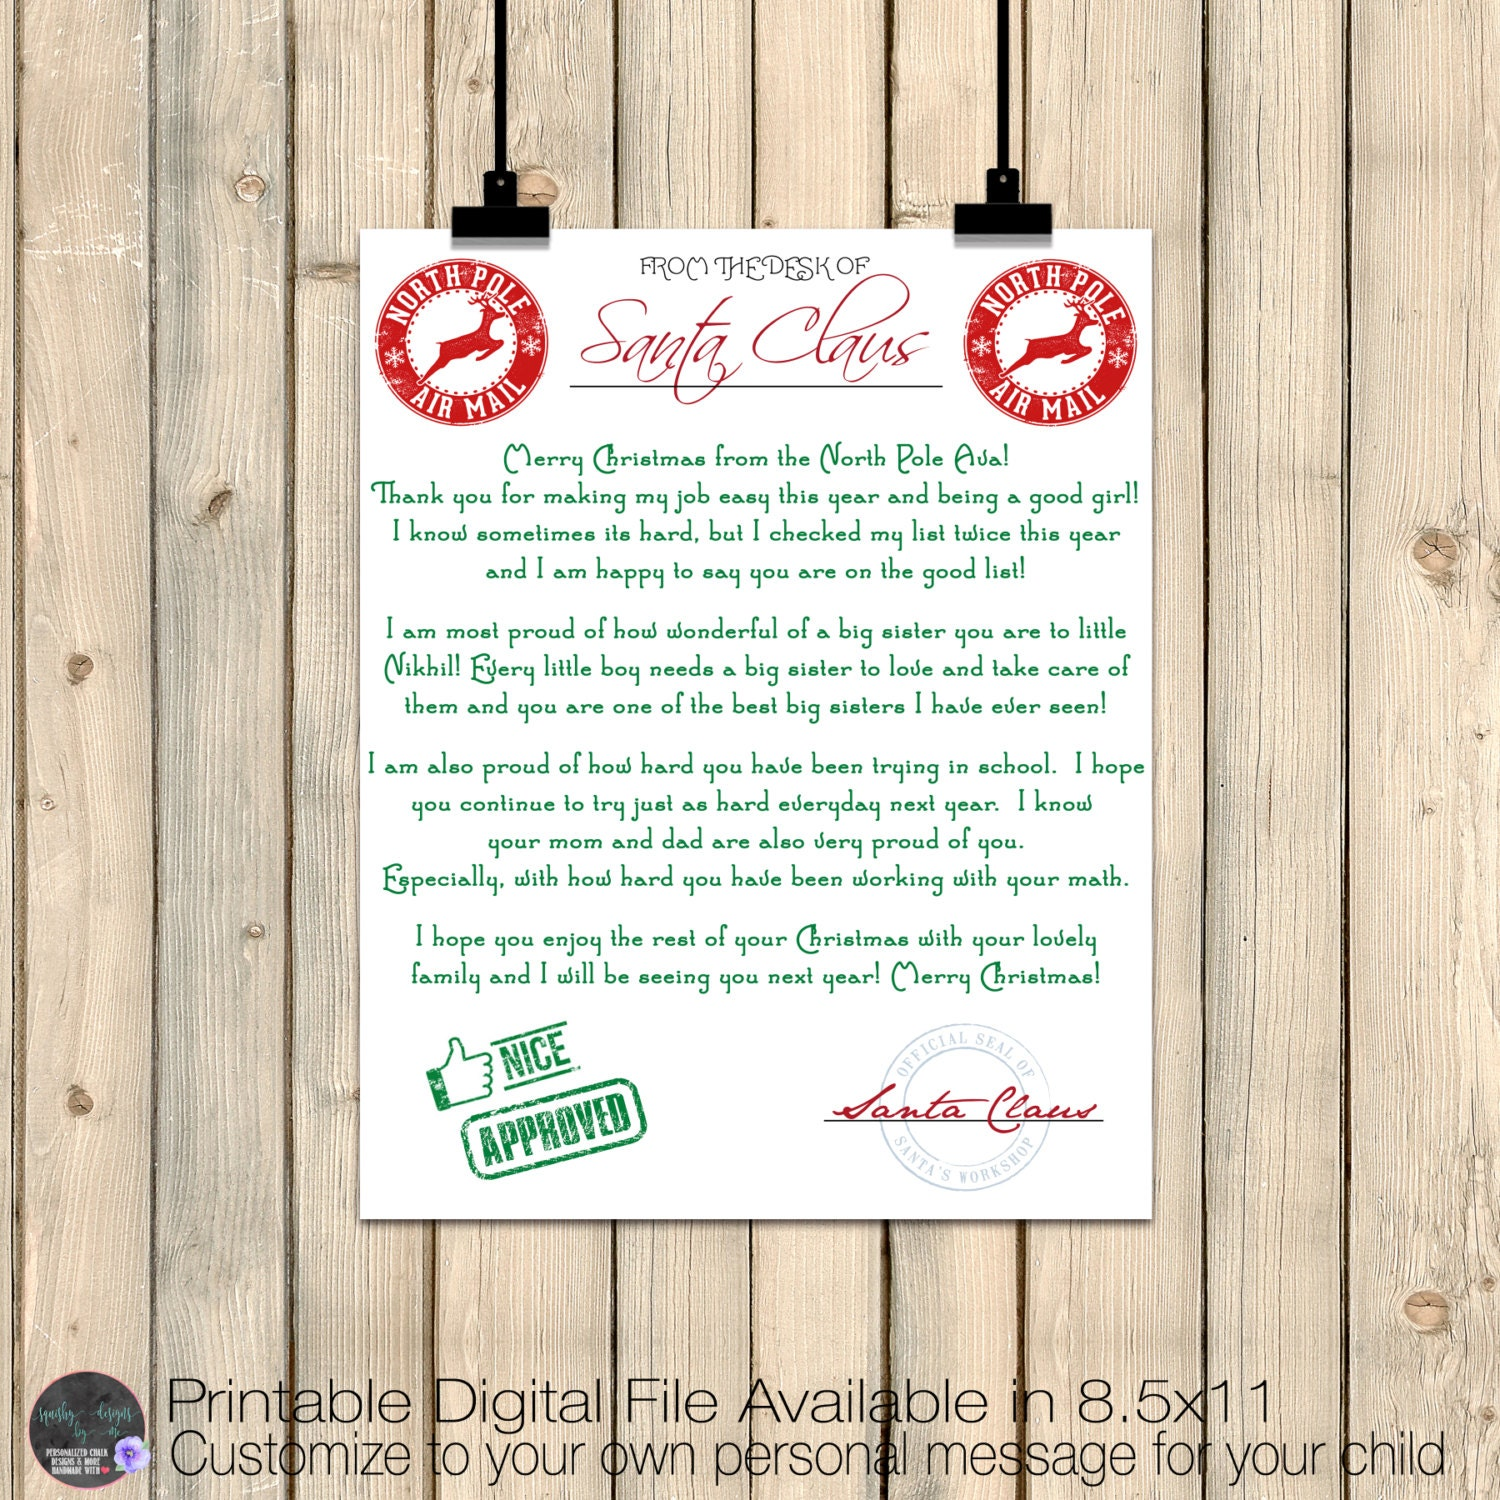 santa claus letter letter from santa claus santa claus letterhead list 24721 | il fullxfull.1143375153 r4oy